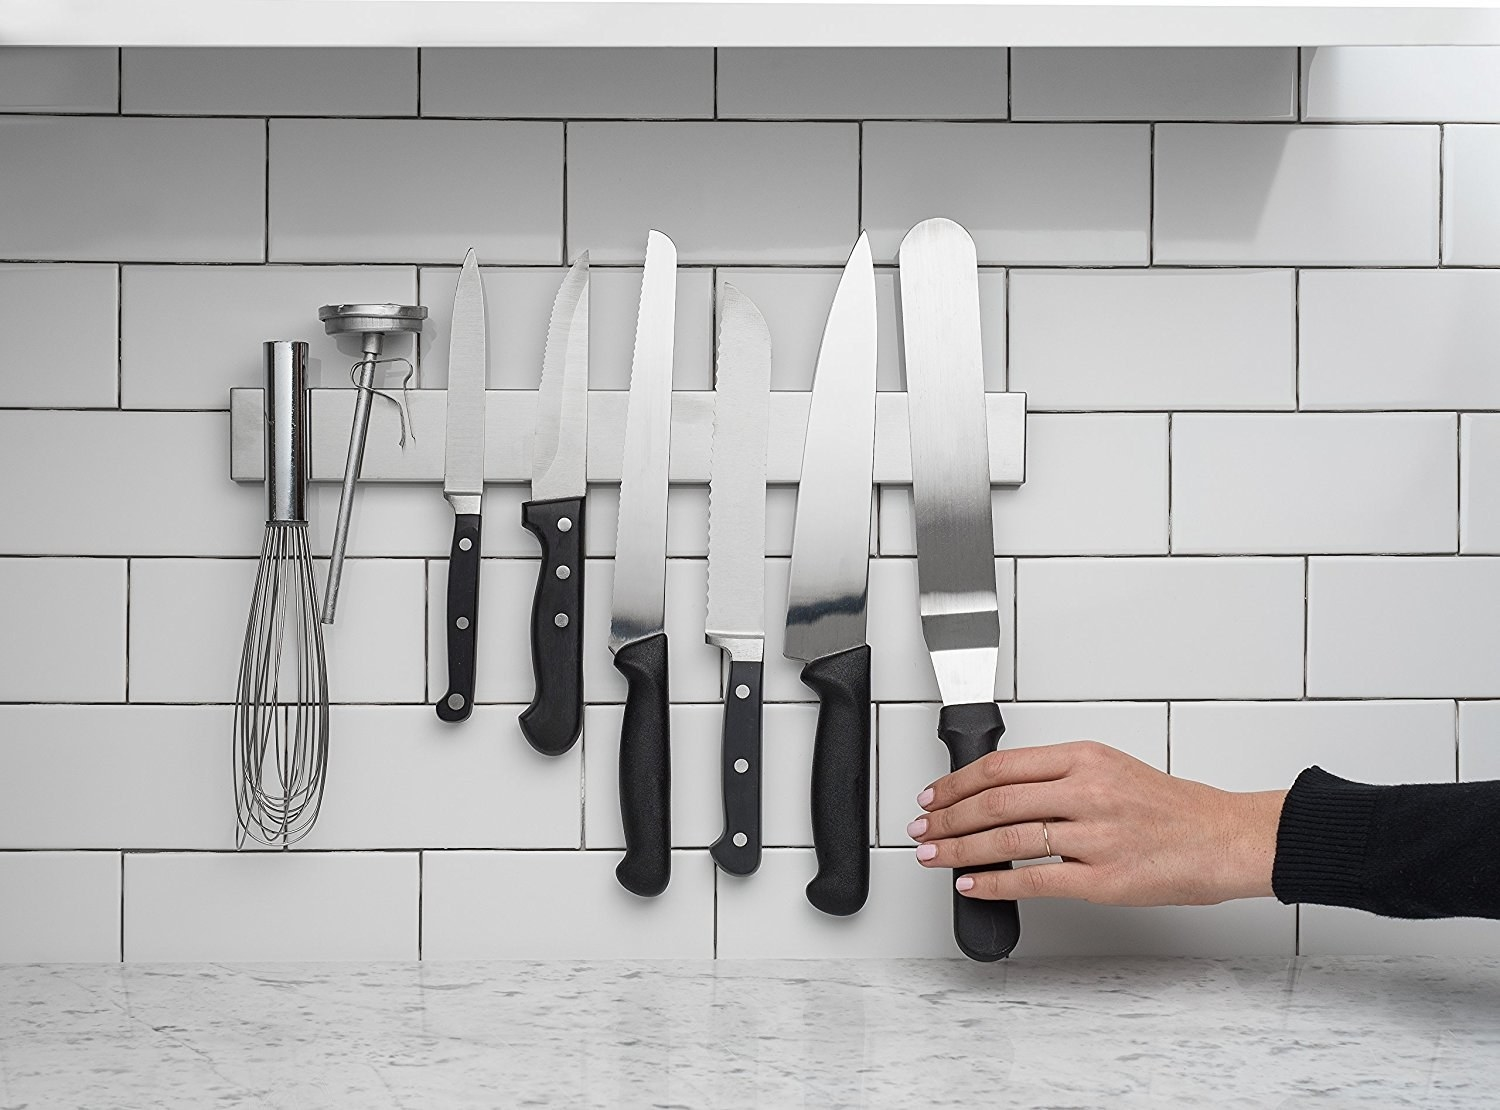 The wall-mounted stainless-steel strip holding up a set of knives and whisk